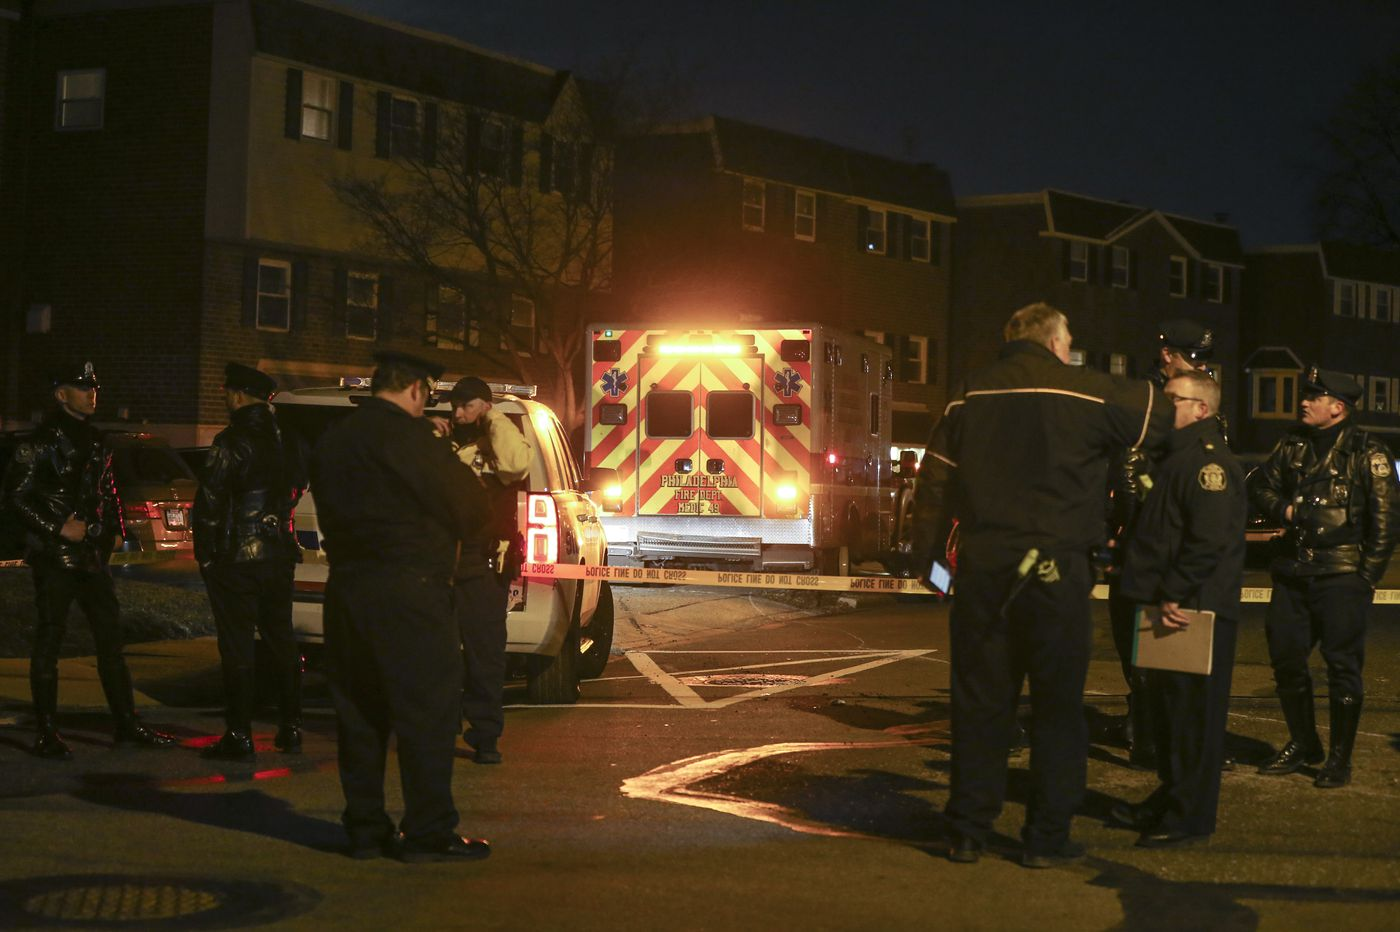 Police identify man accused of stealing ambulance, evading cops in Northeast Philly